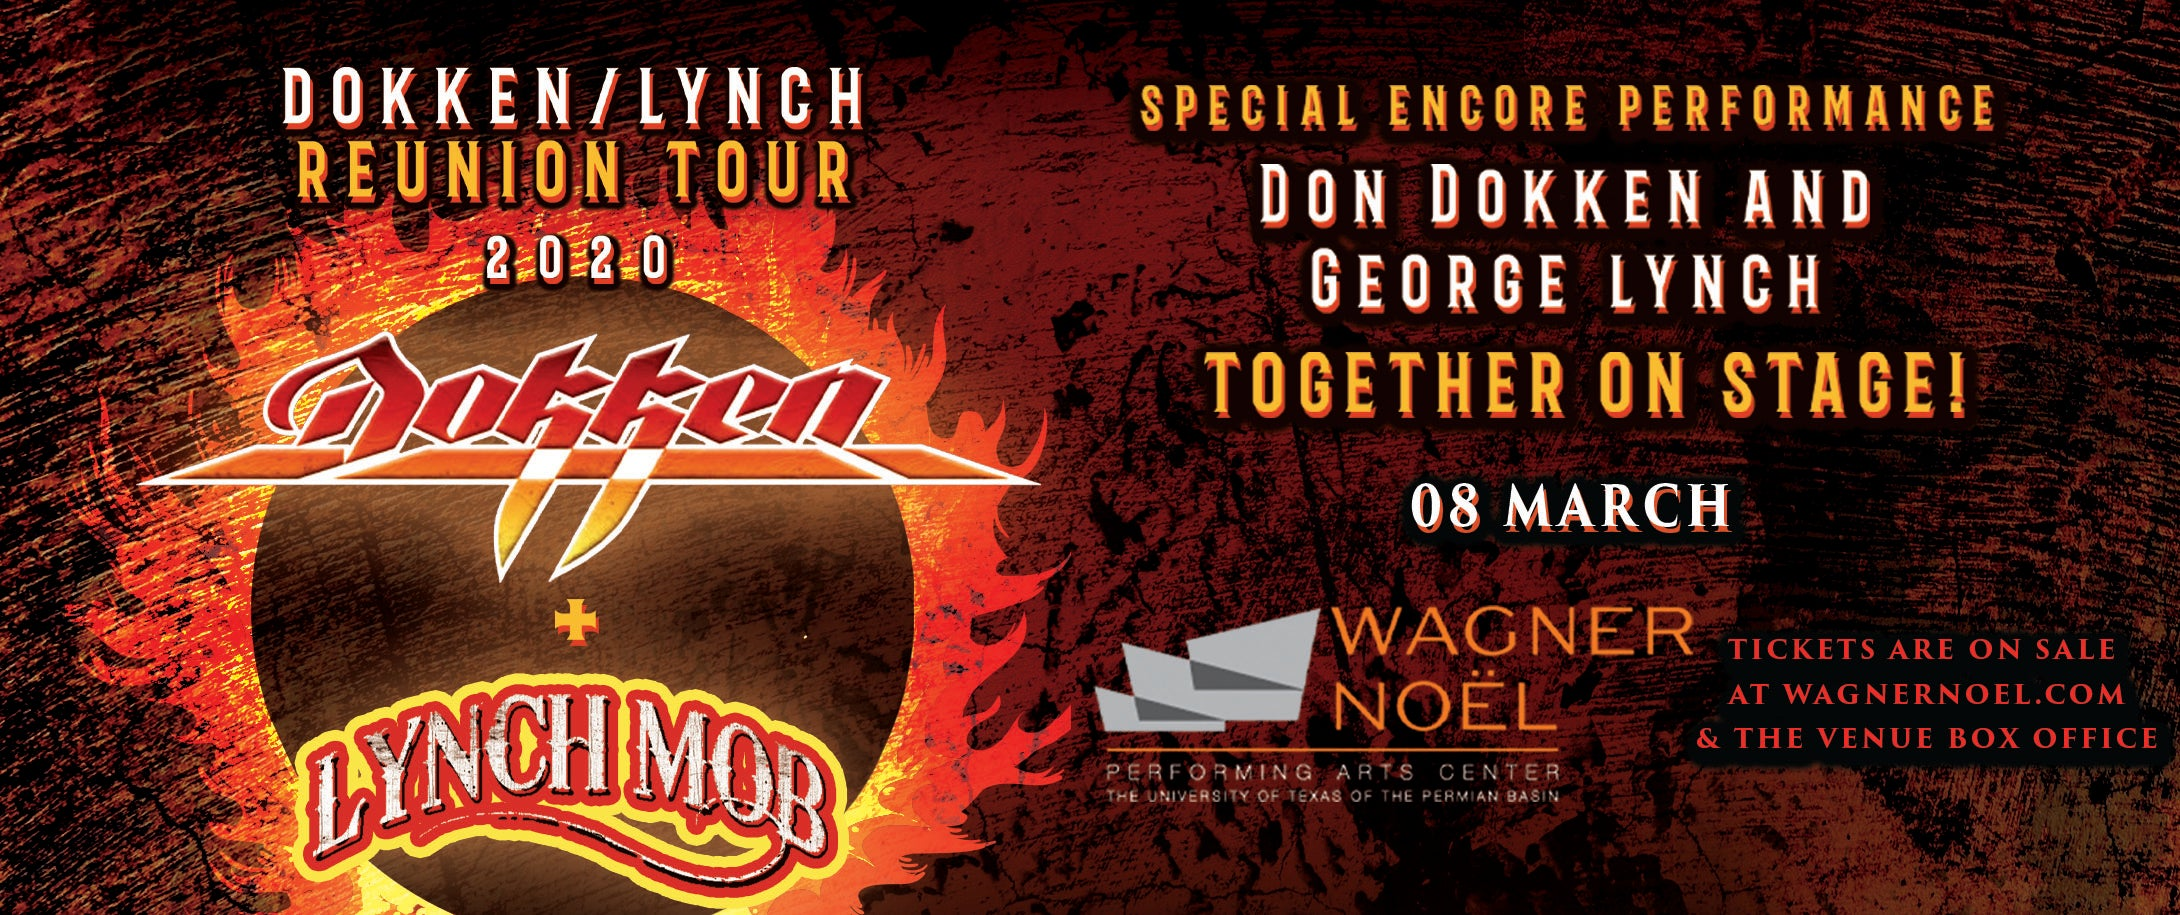 Dokken / Lynch 2020 Reunion Tour